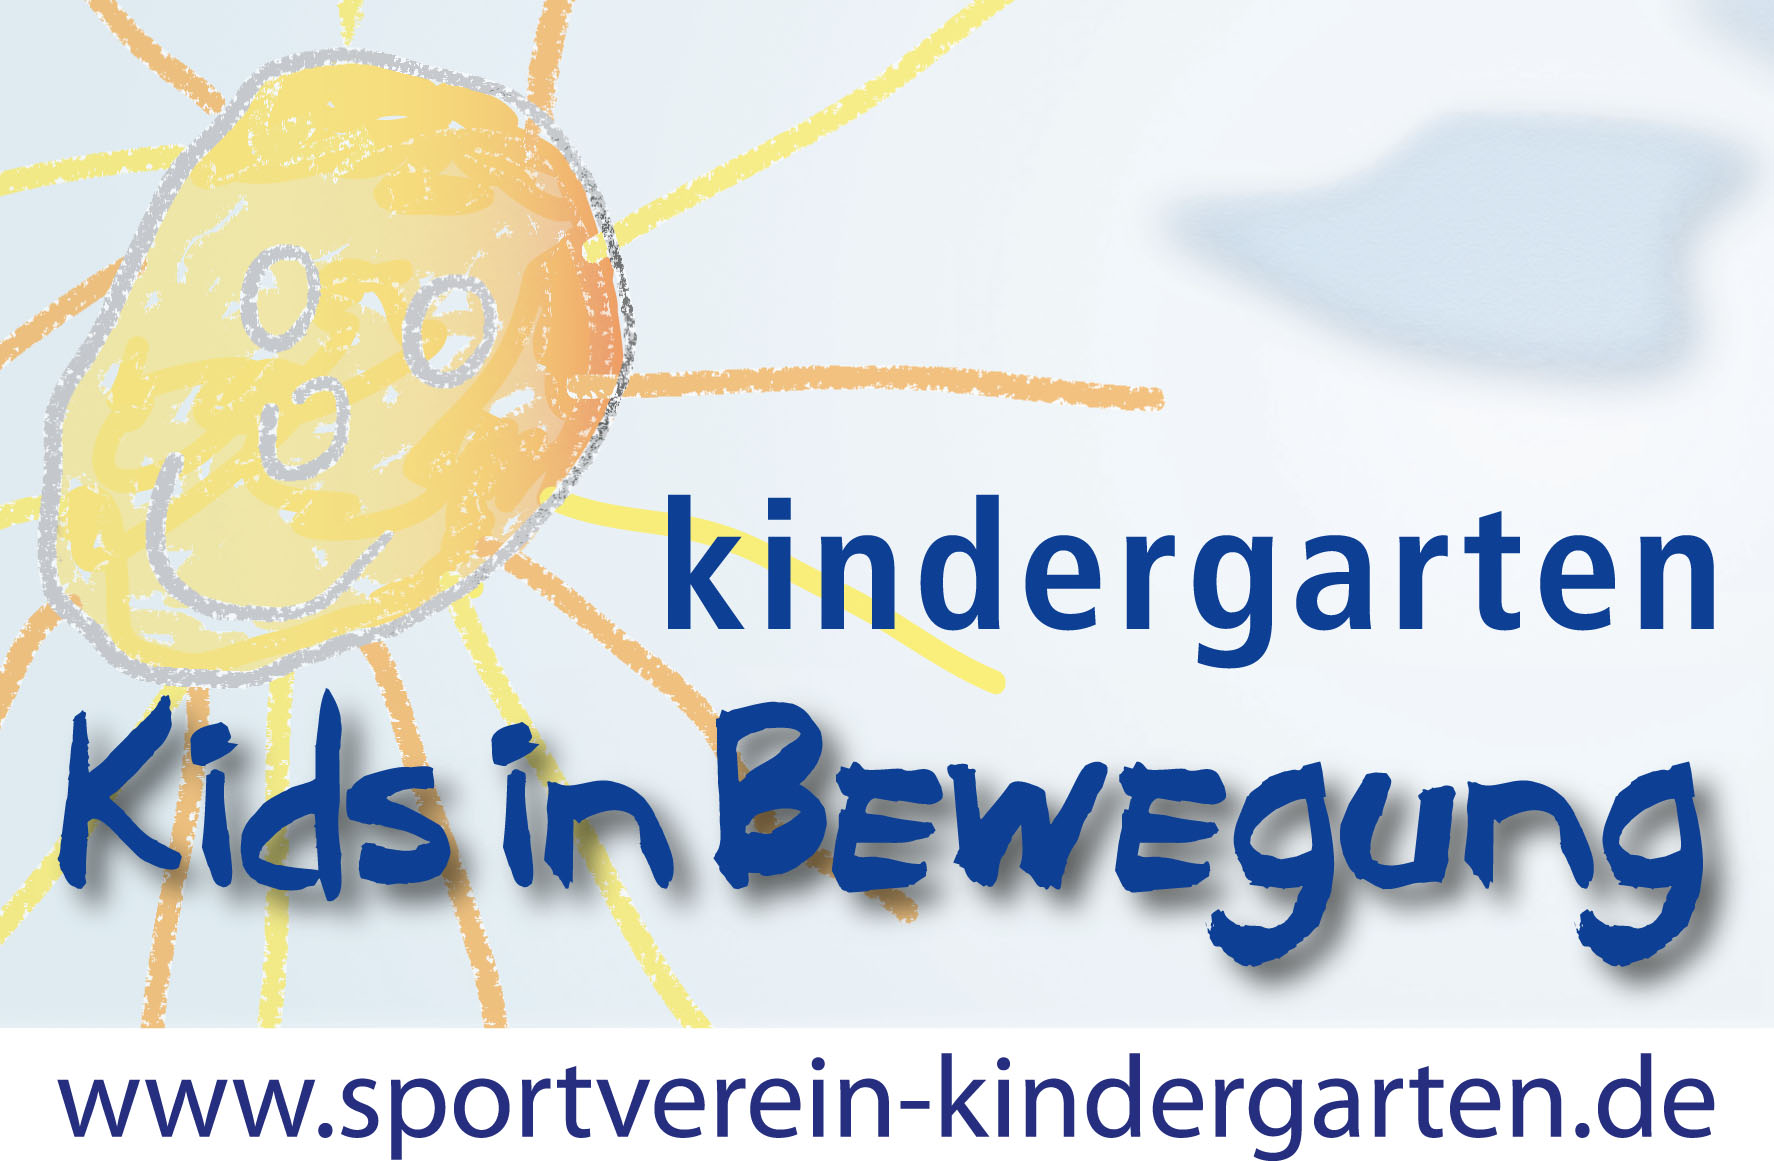 Kindergarten Kids in Bewegung - Kooperation Sportverein und Kindergarten